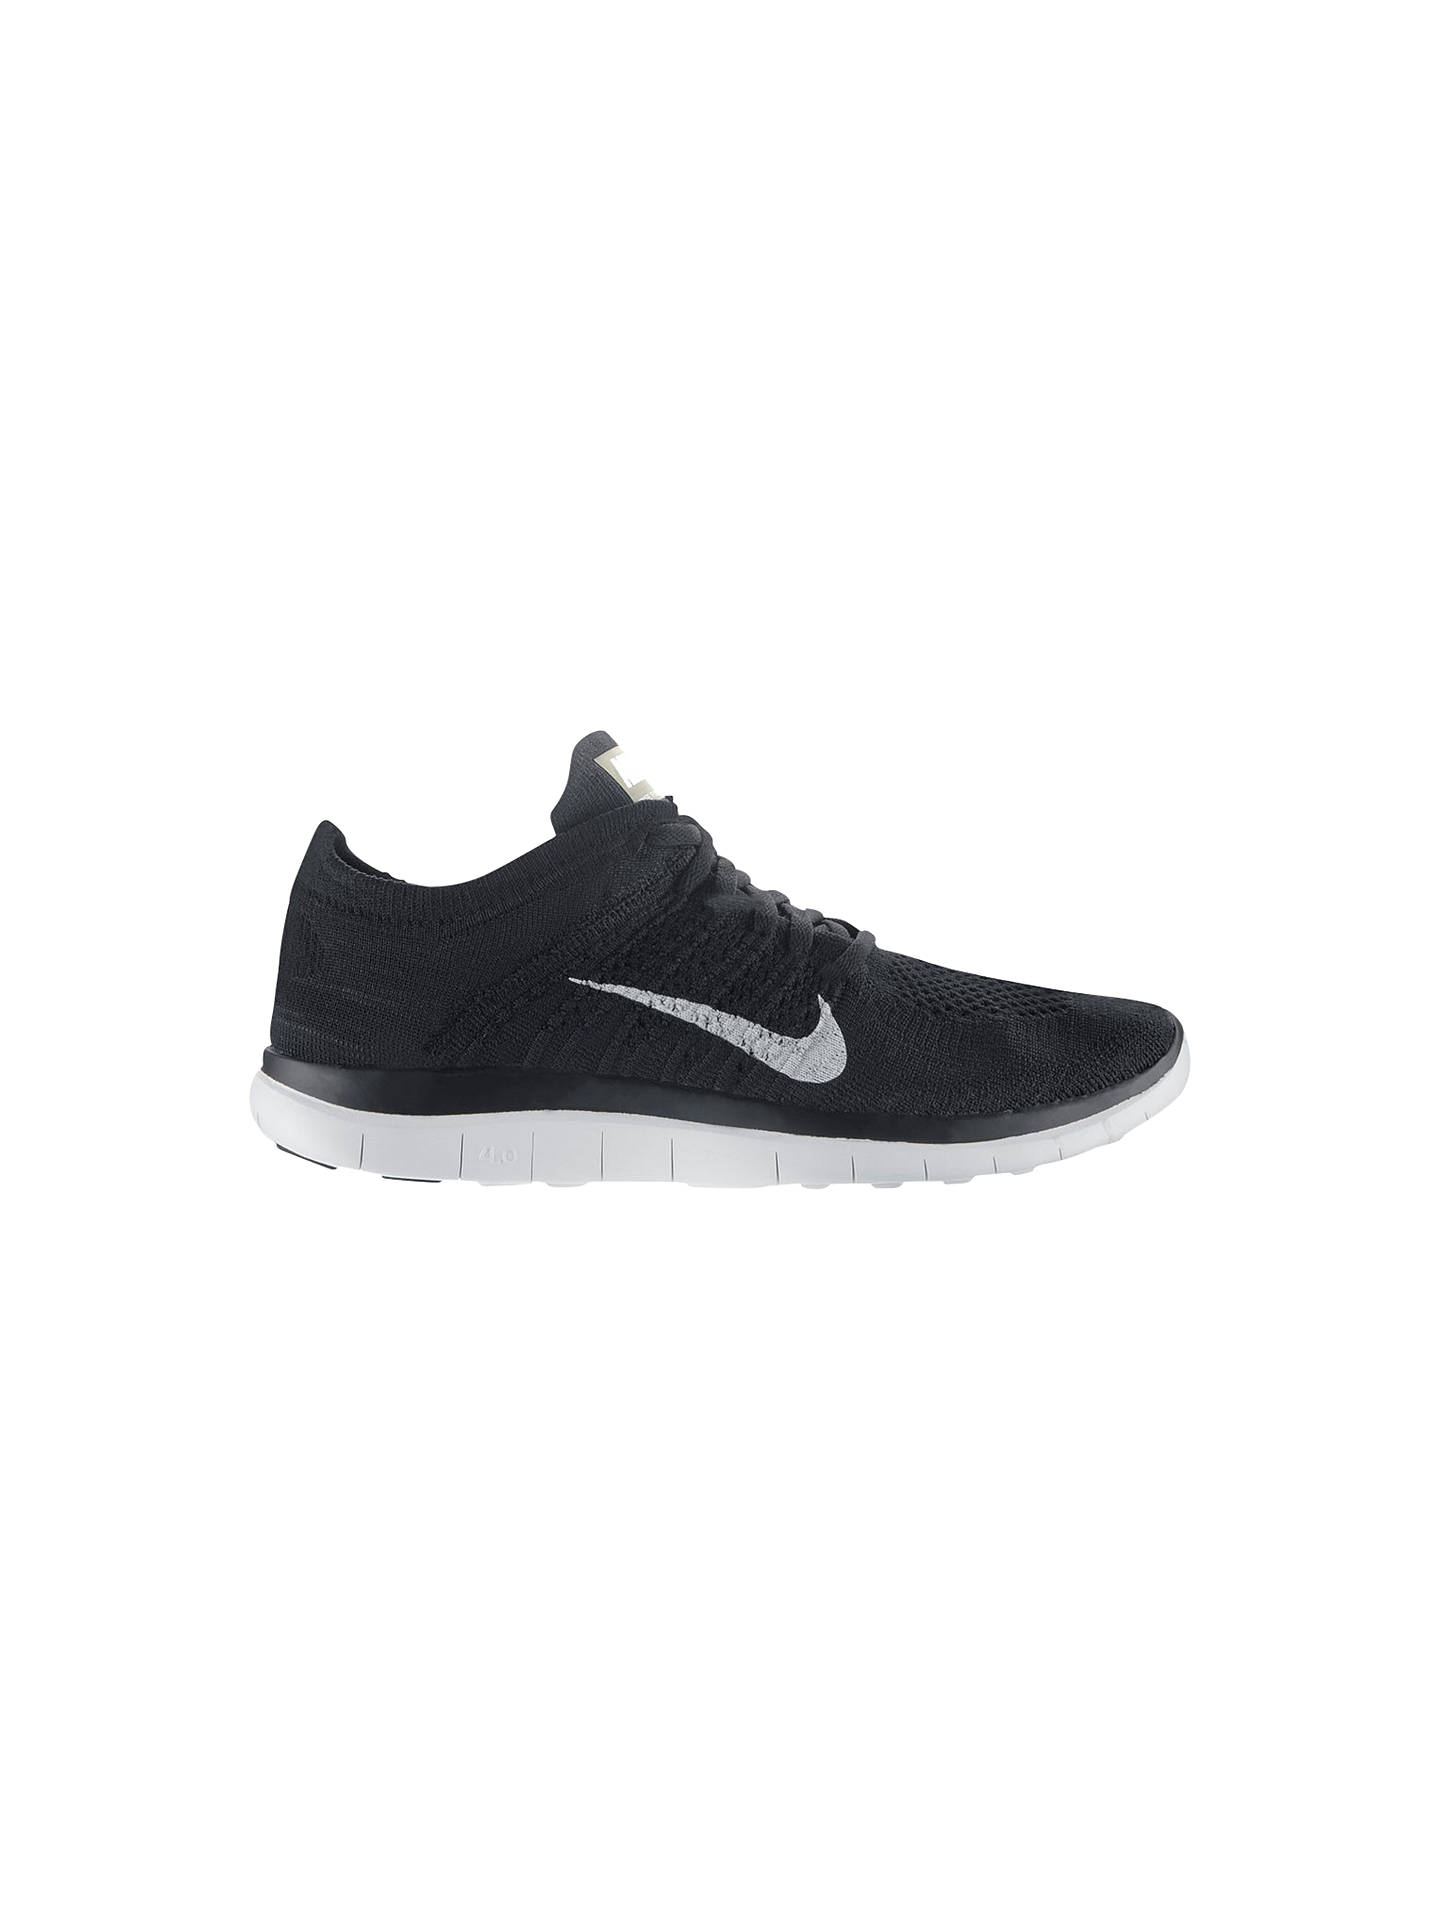 promo code 96a0e 5864f Buy Nike Free 4.0 Flyknit Women s Running Shoes, Black, 4 Online at  johnlewis.